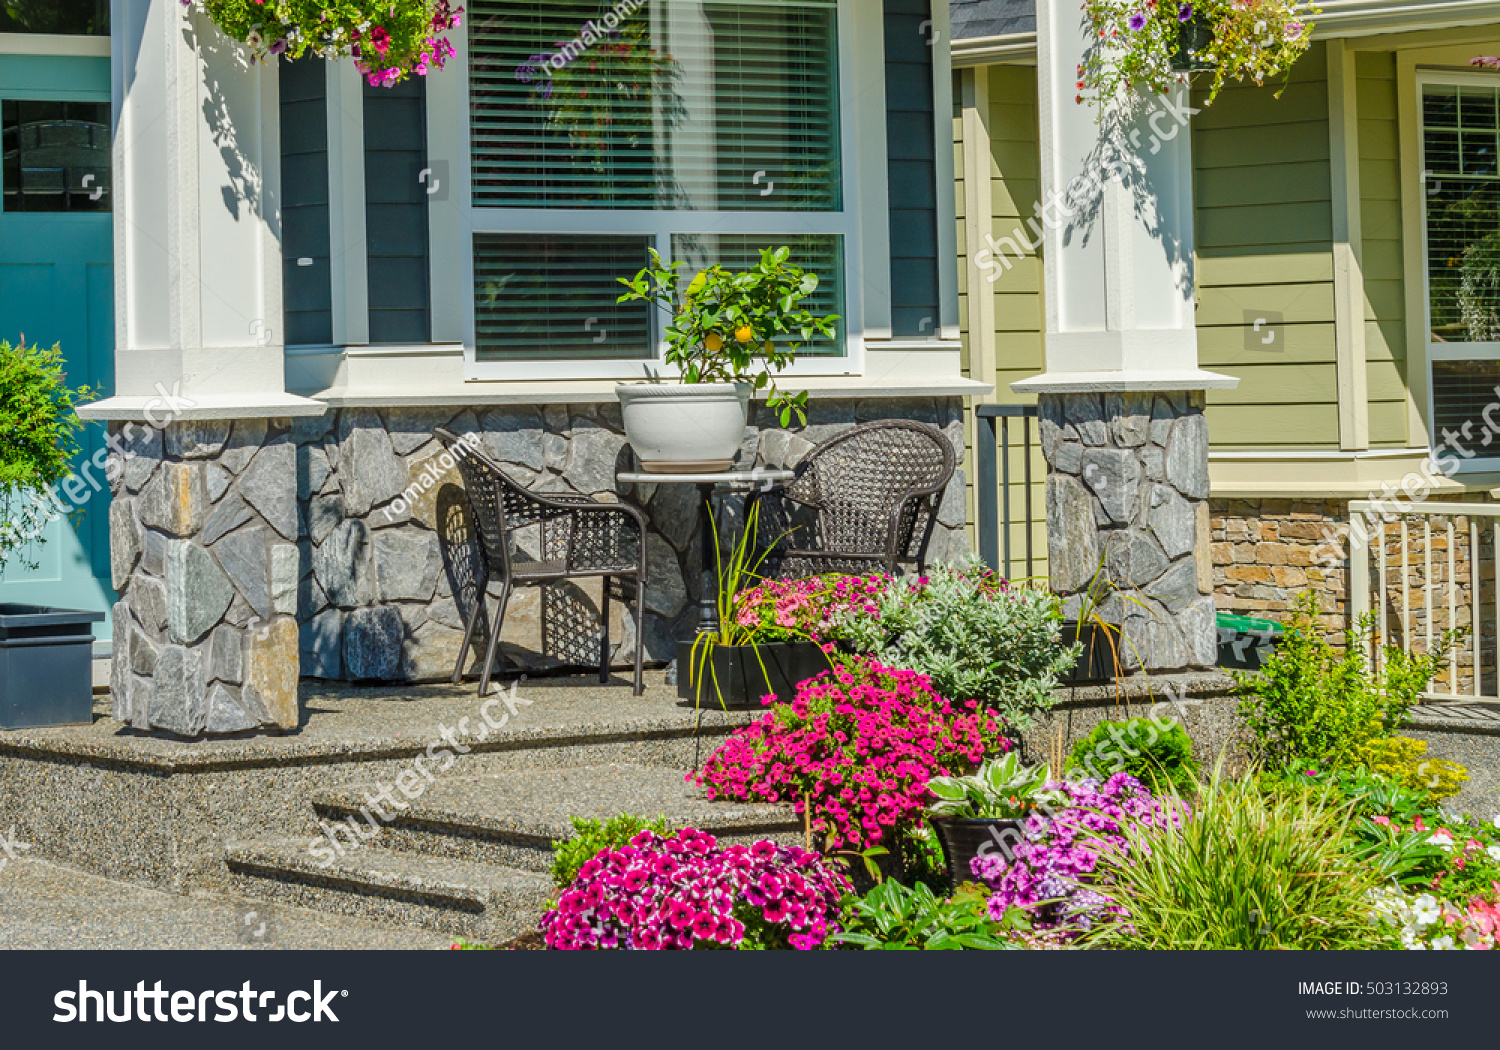 https www shutterstock com image photo garden table chairs on patio front 503132893